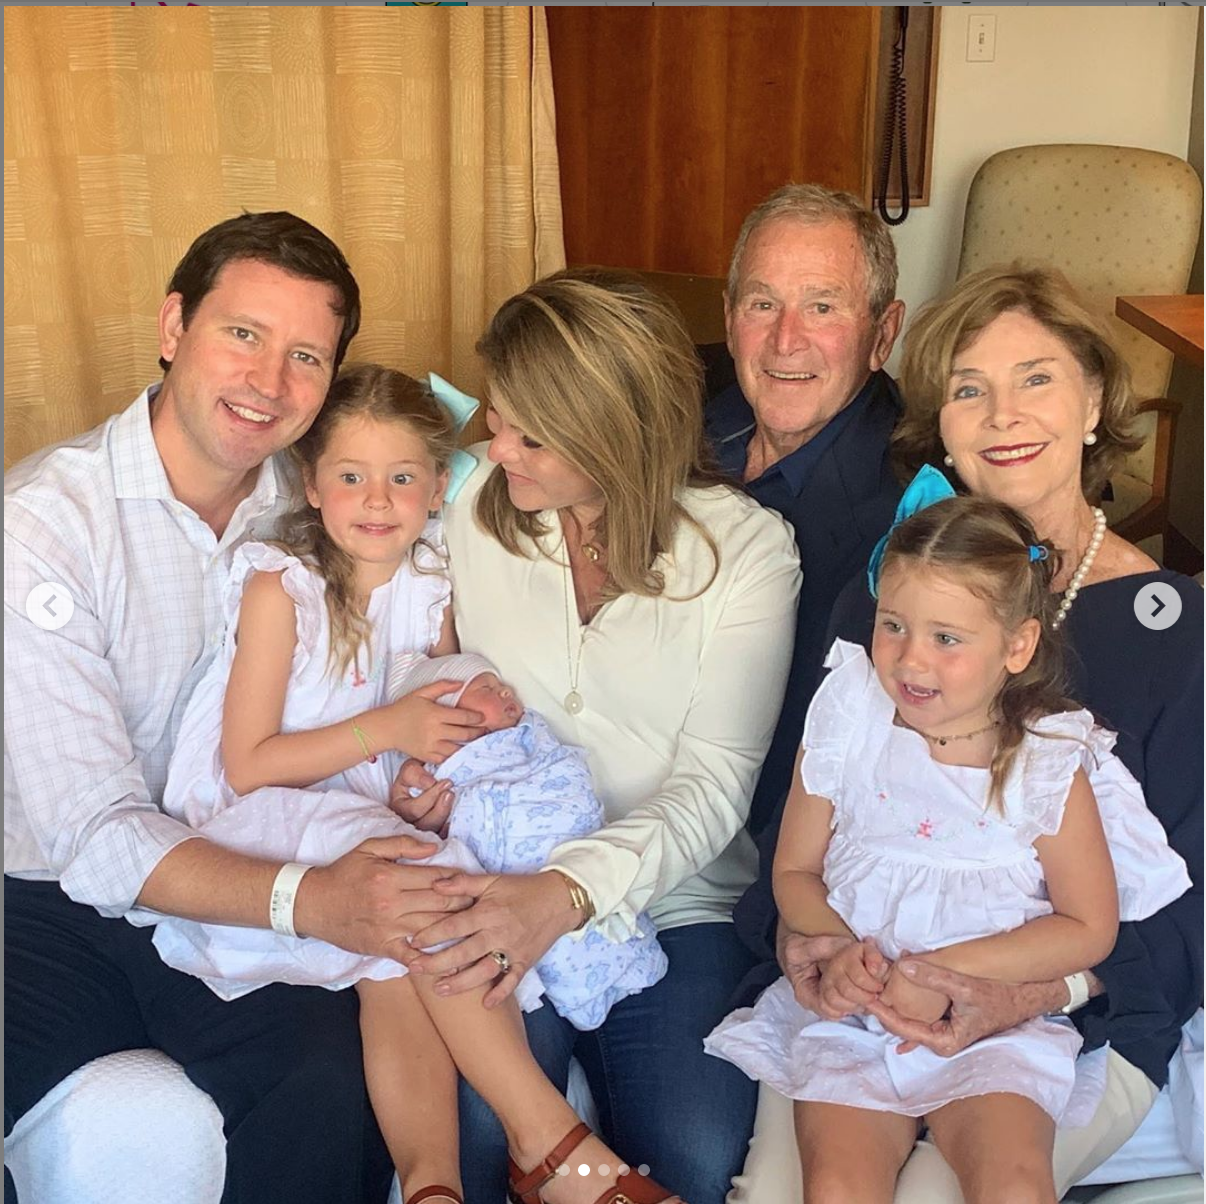 Jenna Bush Hager and Henry Hager Welcome Baby Hal